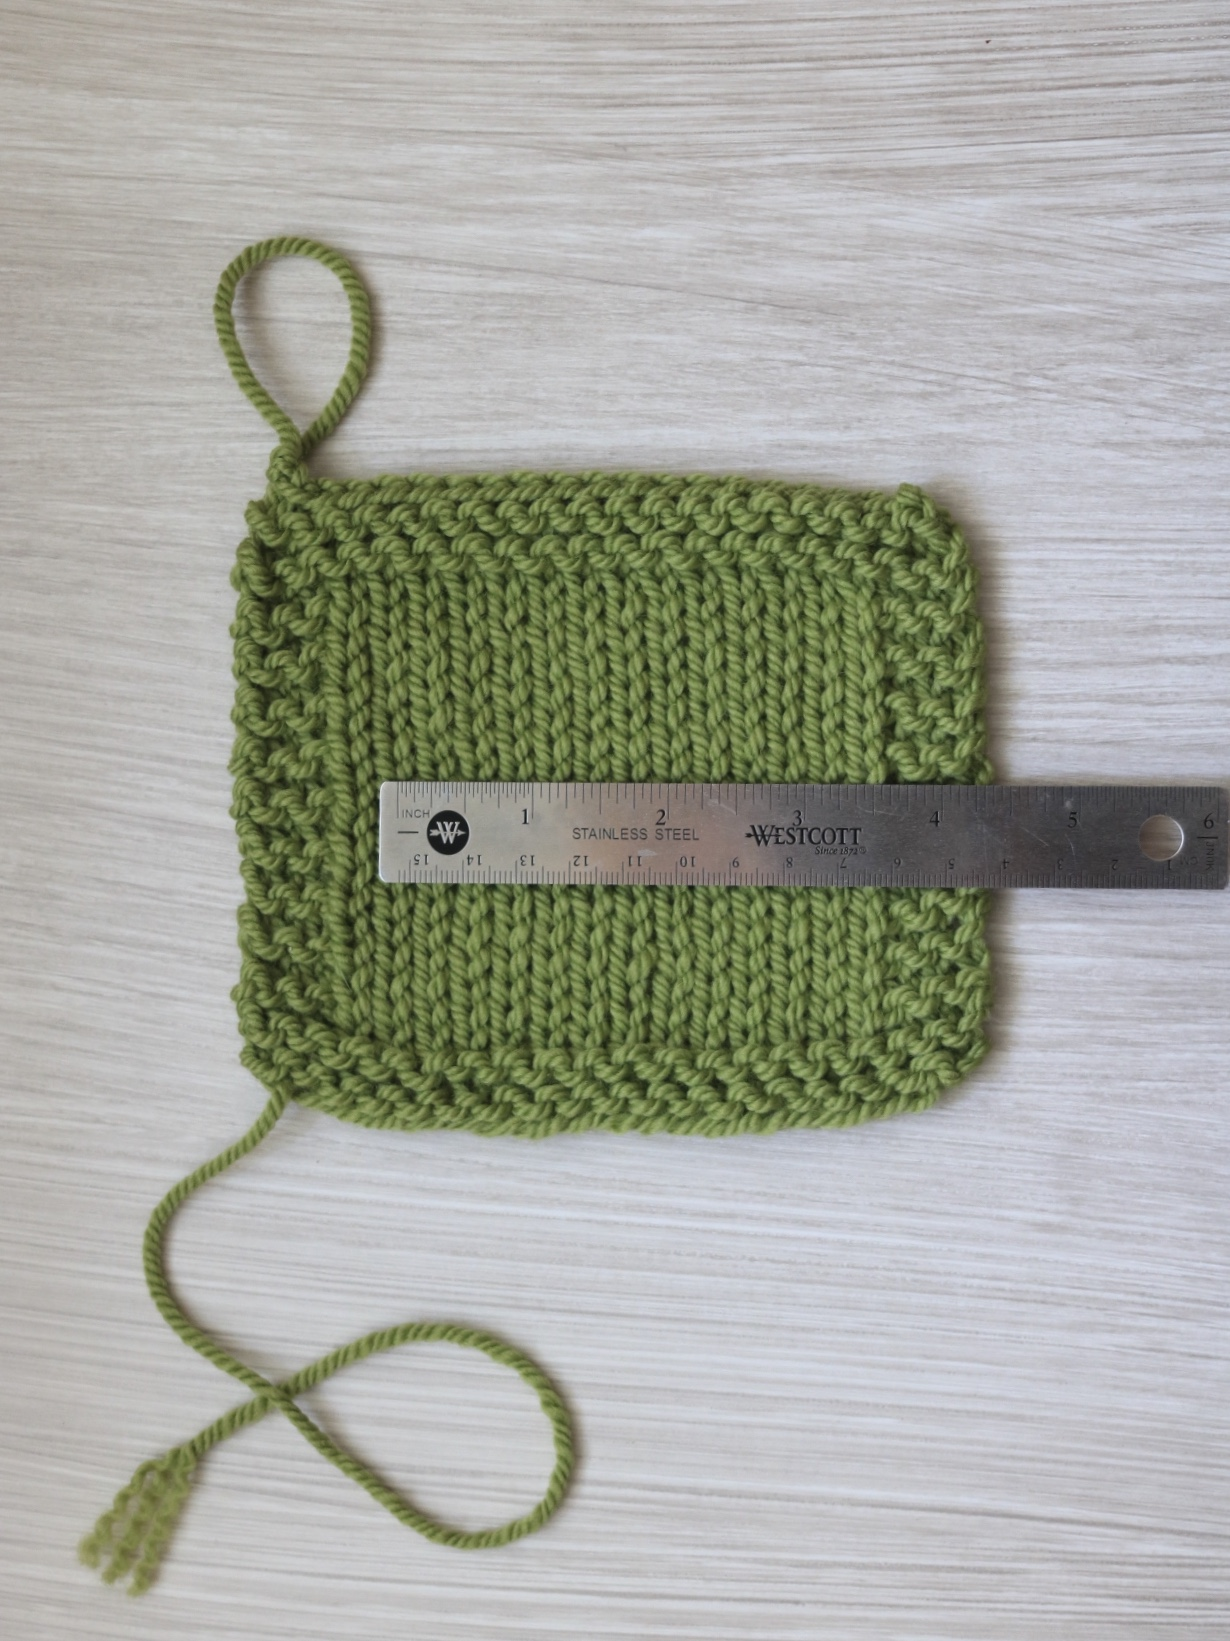 Reading the stitch count on a knitting gauge swatch